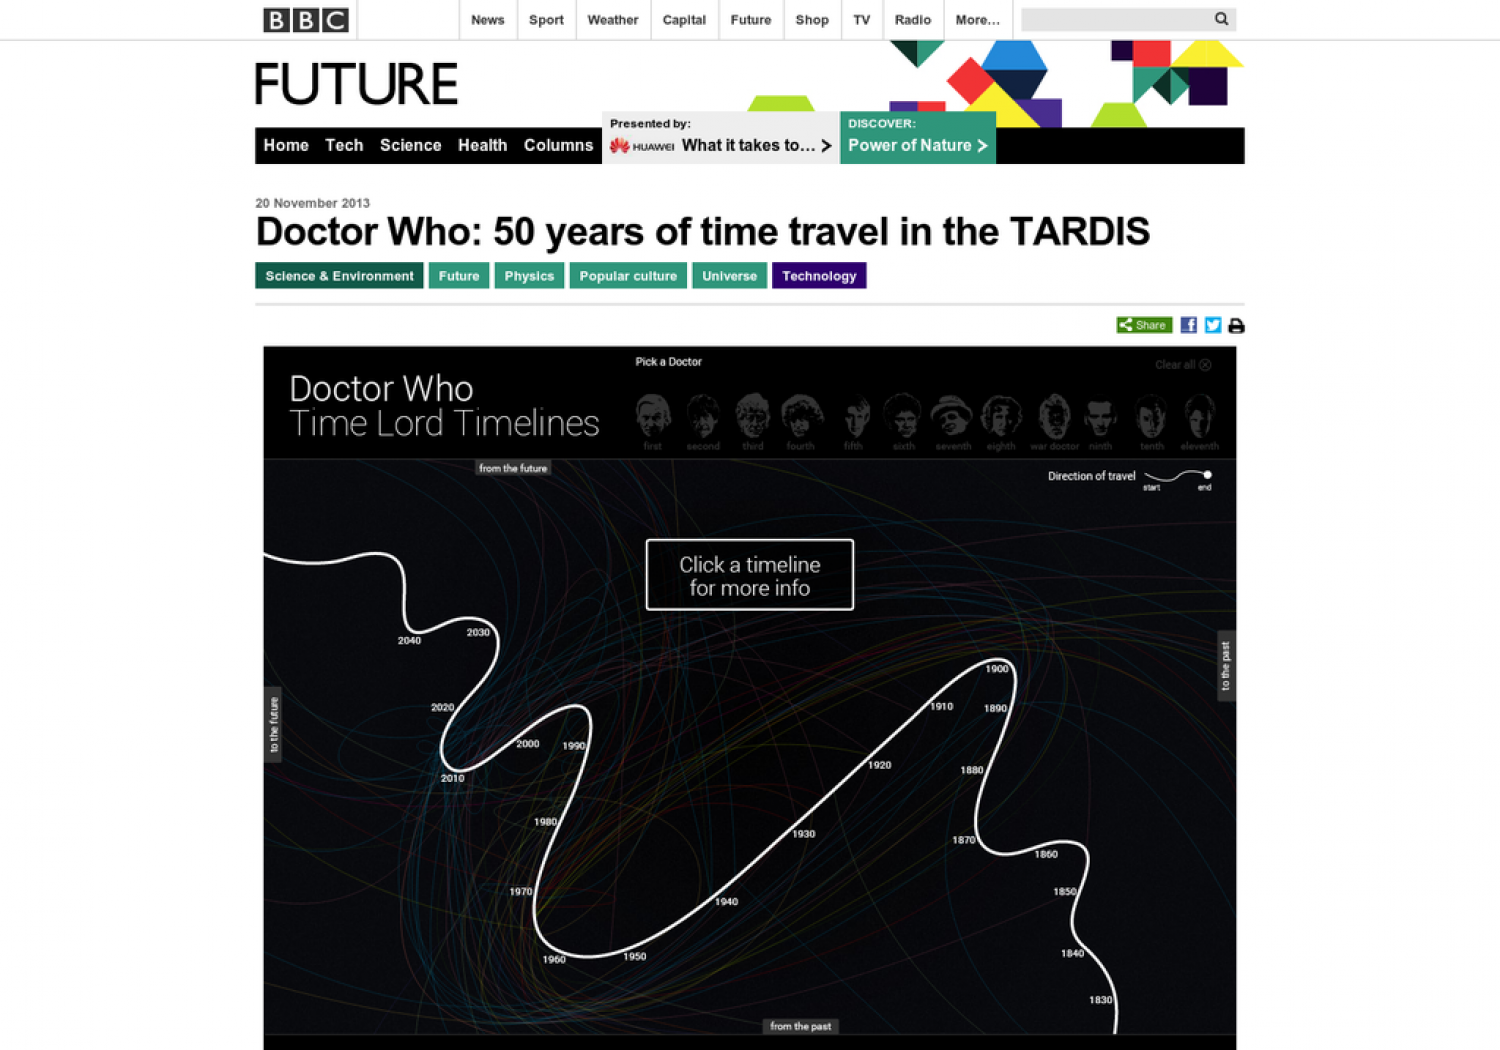 Doctor Who Time Lord Timelines Infographic